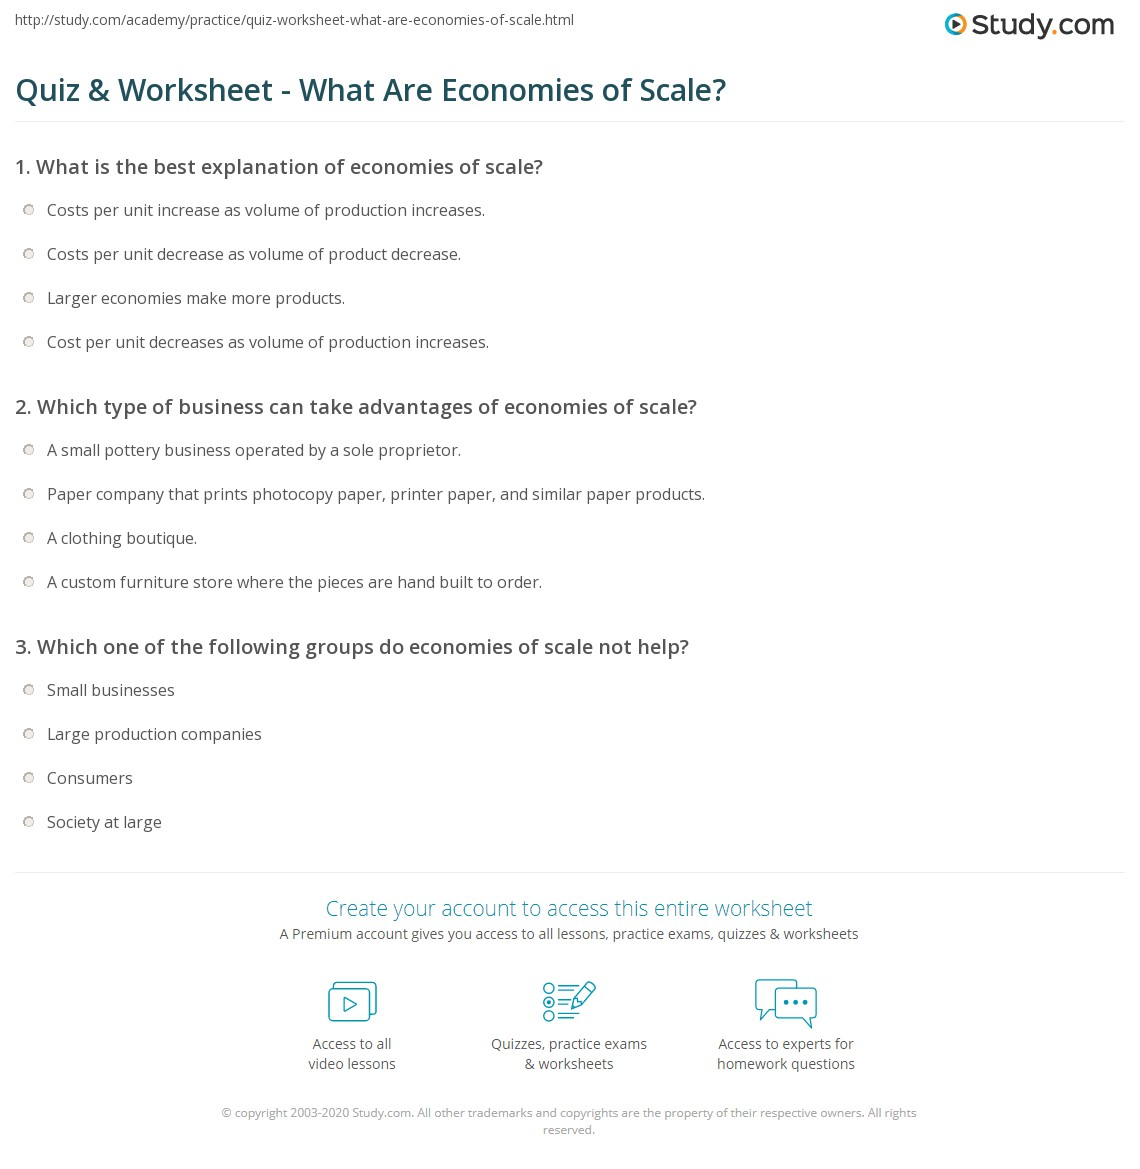 quiz & worksheet - what are economies of scale? | study